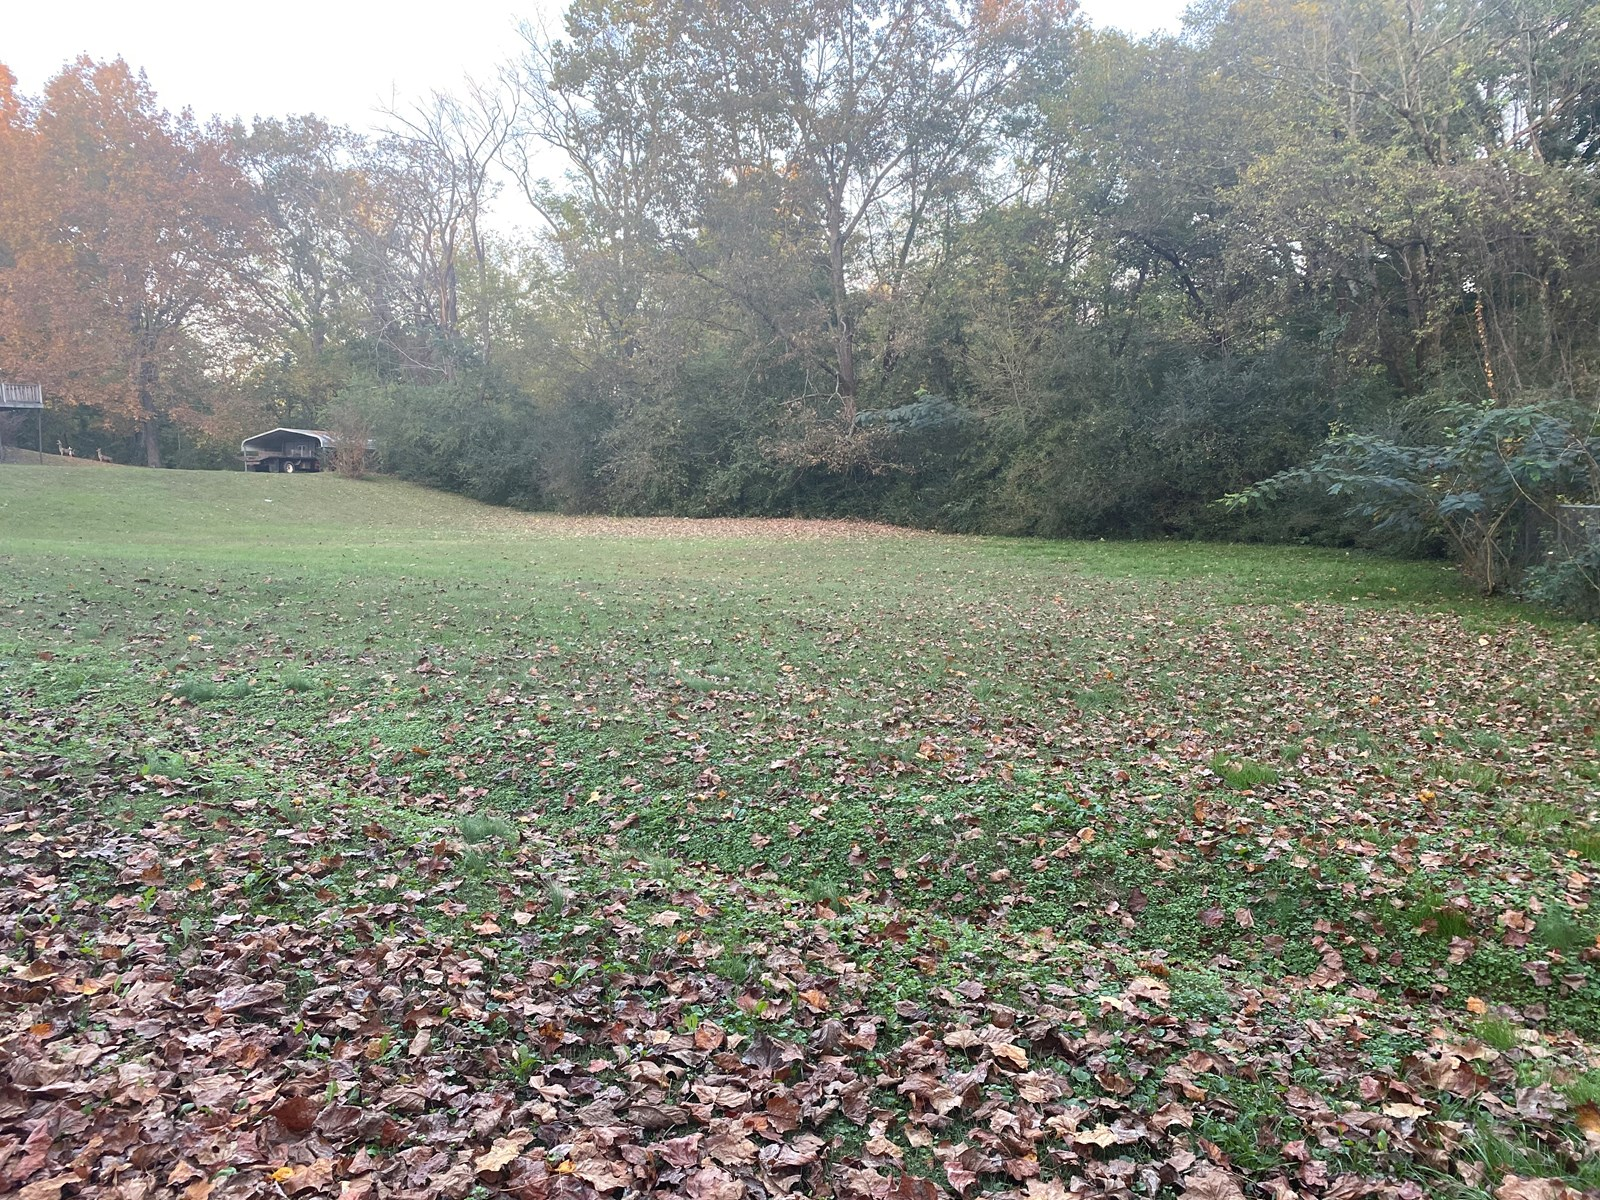 LOT FOR SALE WITH PUBLIC UTILITES IN LAWRENCEBURG TENNESSEE